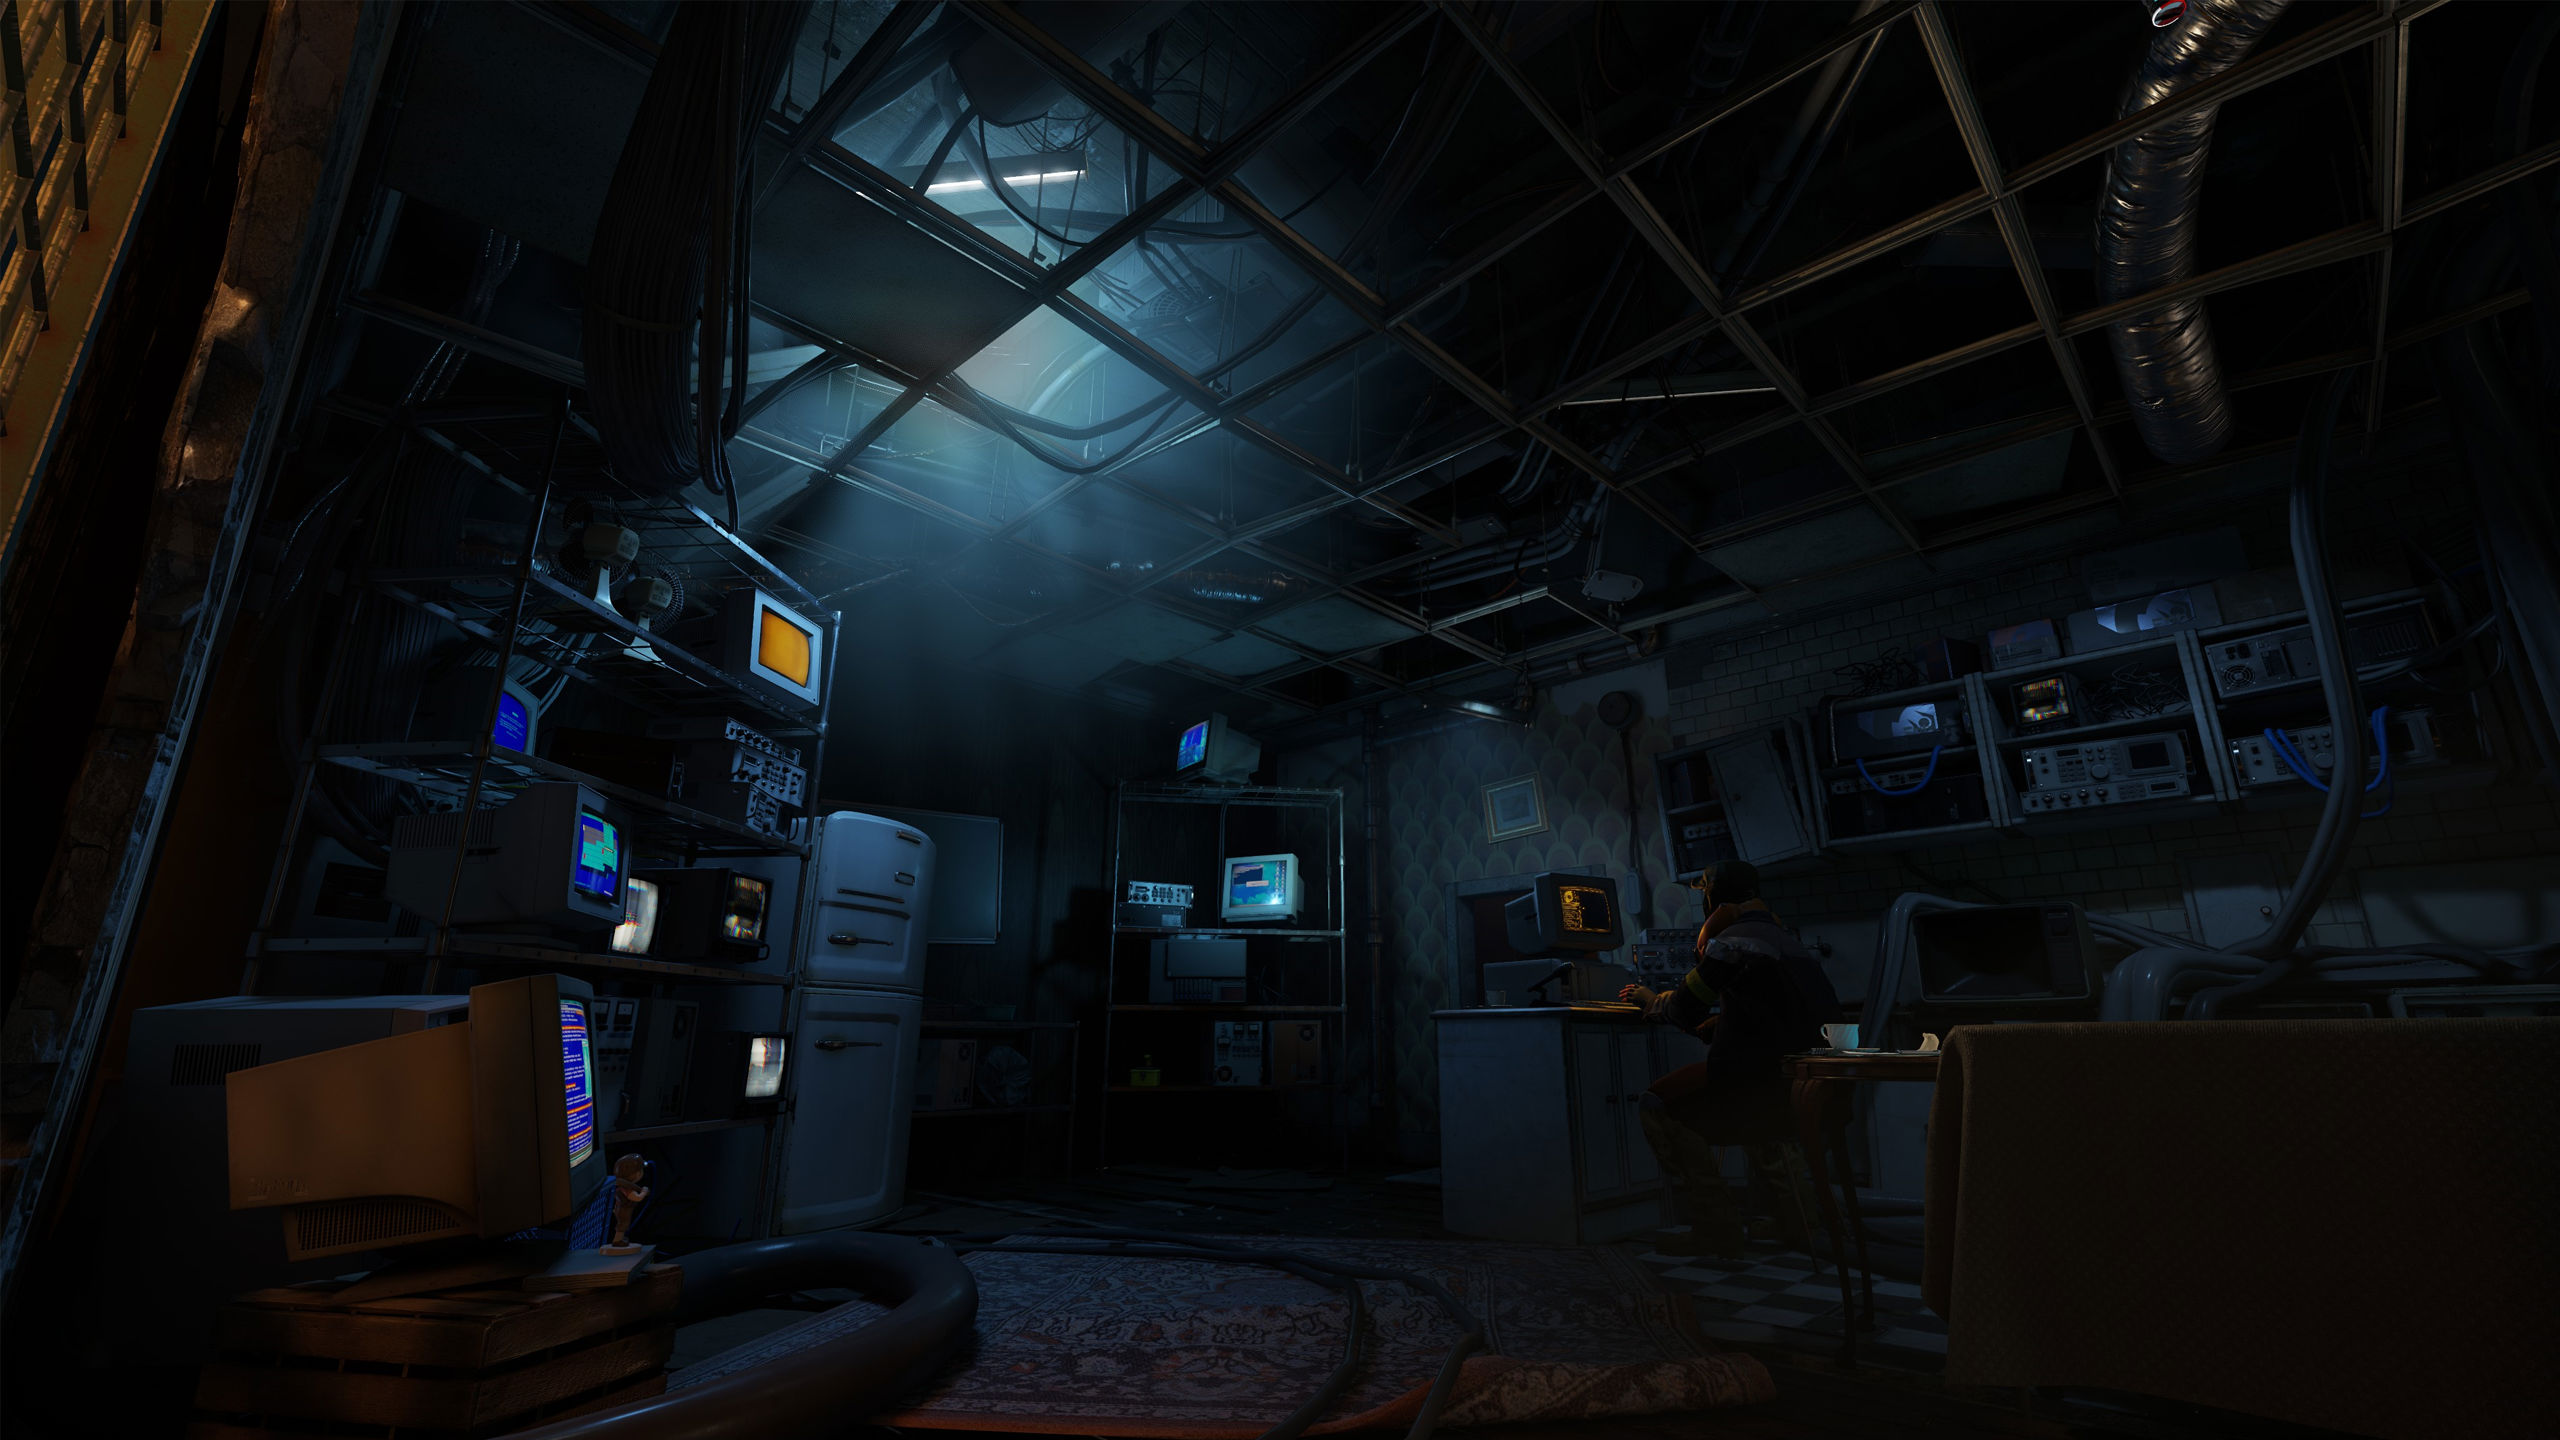 Valve's playing coy about whether Half-Life: Alyx might come to PSVR screenshot